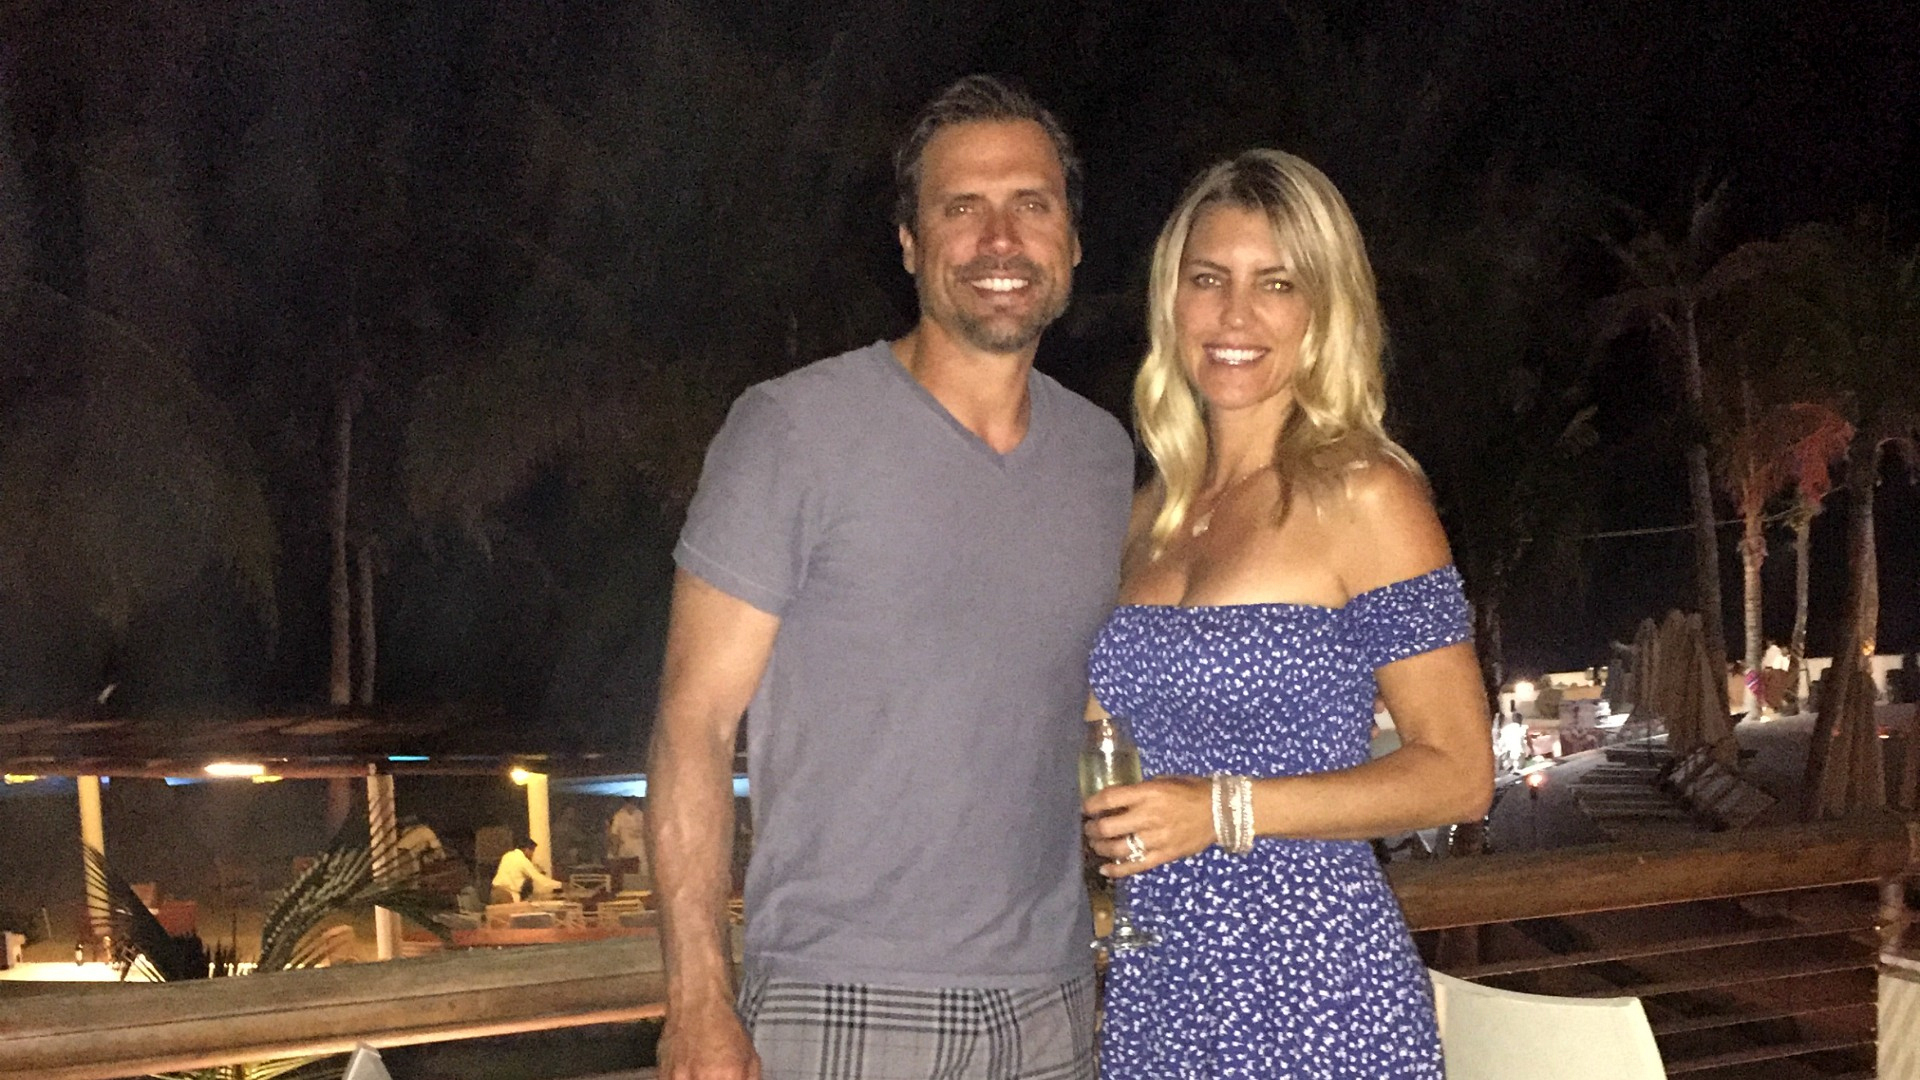 Joshua Morrow (Nick Newman) and his wife, Tobe, had some fun in the sun in Cabo, Mexico!